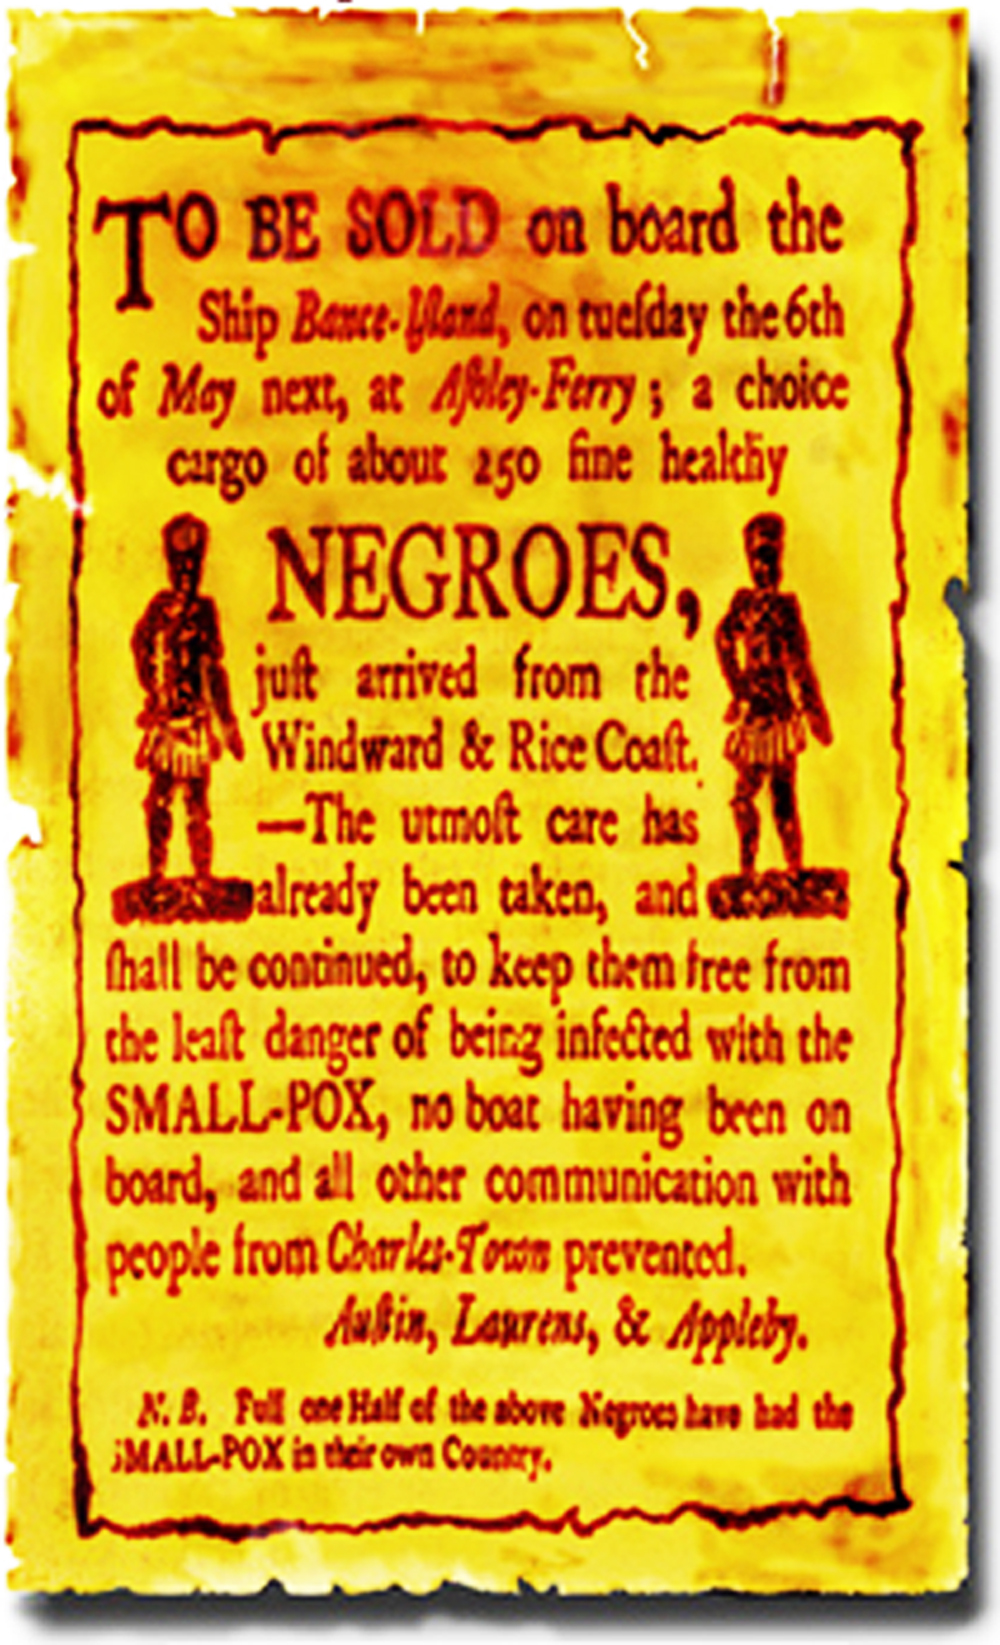 A Poster Advertising The Sale Of 250 Healthy Negroes